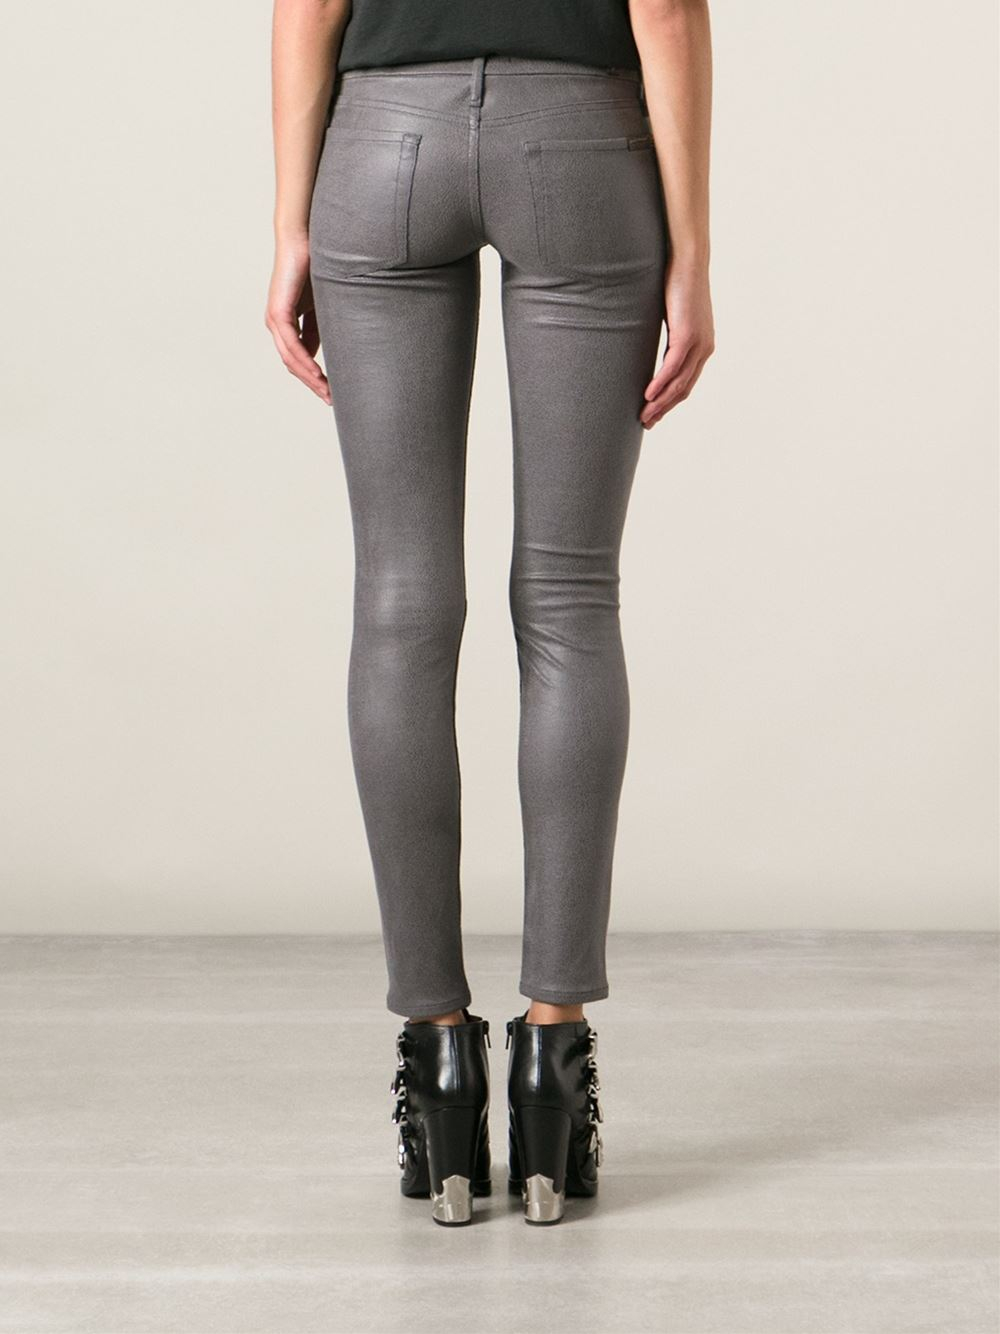 Shop Skinny Girl, Skinny High Rise Coated Jeans at Lord & Taylor. Free shipping on any order over $ In order to use all of the site functionality on the Lord and Taylor website, you must have JavaScript enabled on your browser.